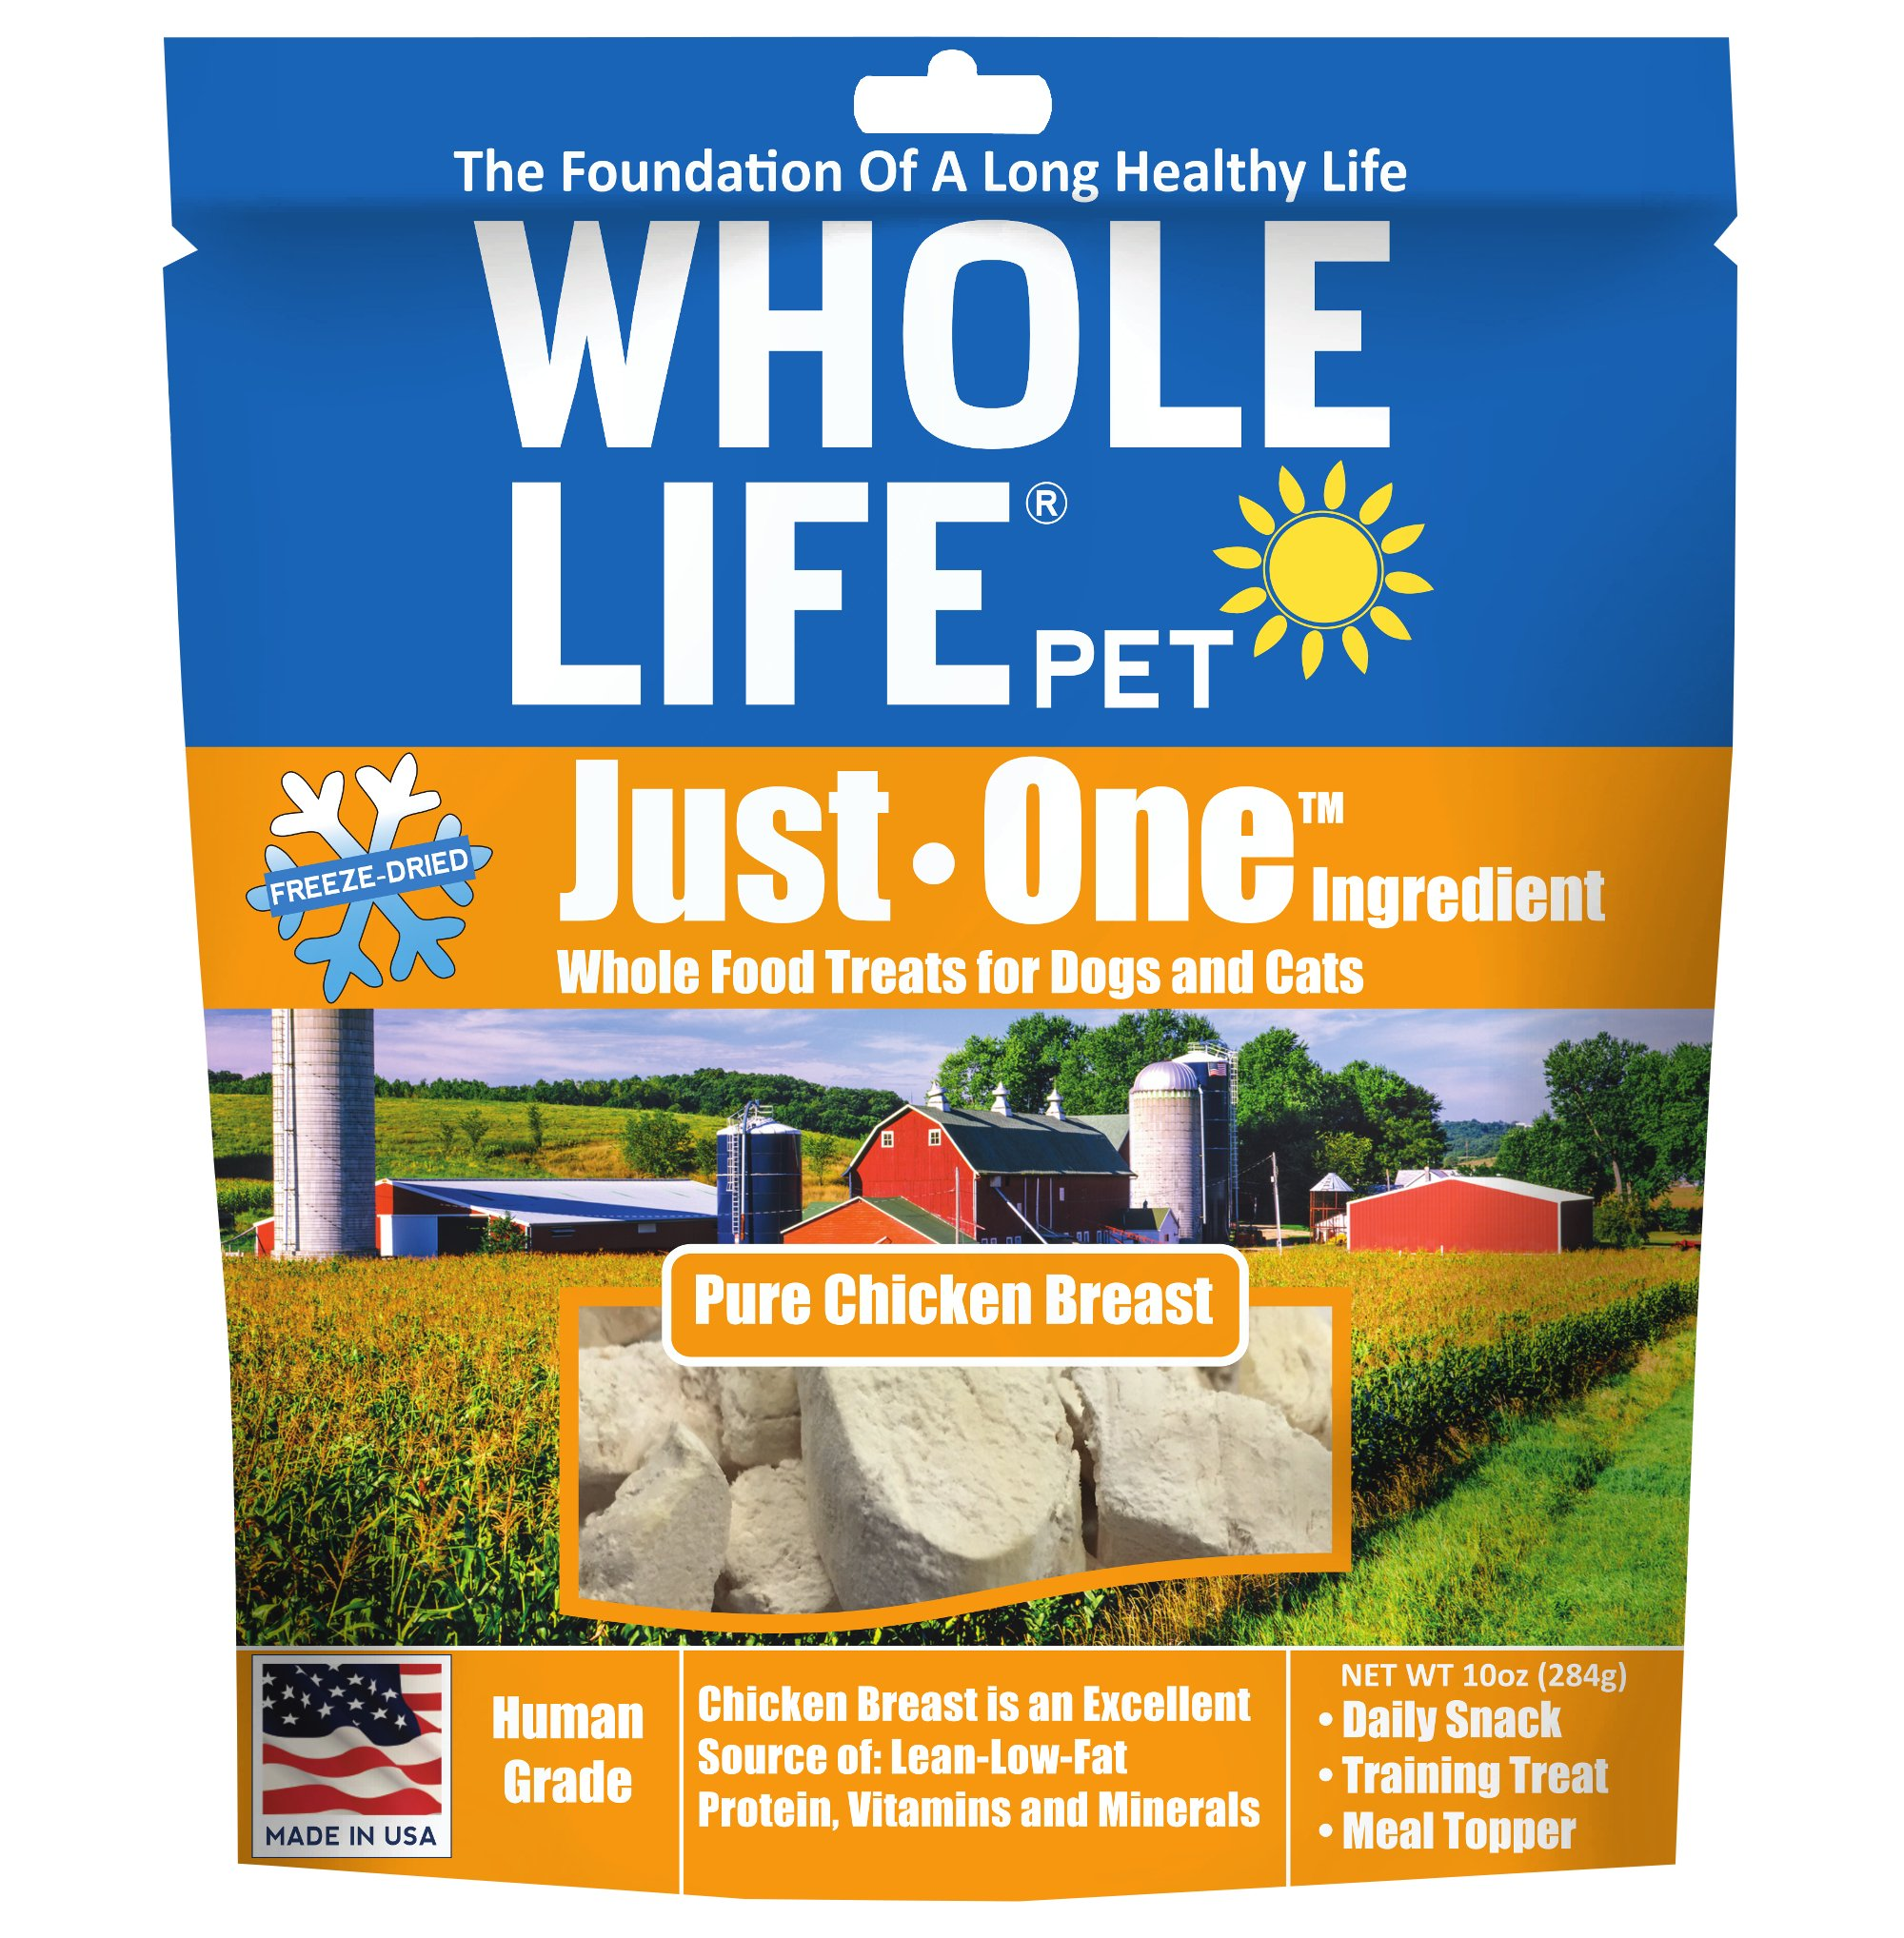 Whole Life Pet Single Ingredient Usa Freeze Dried Chicken Breast Treats Value Pack For Dogs And Cats, 10-Ounce by Whole Life Pet Products